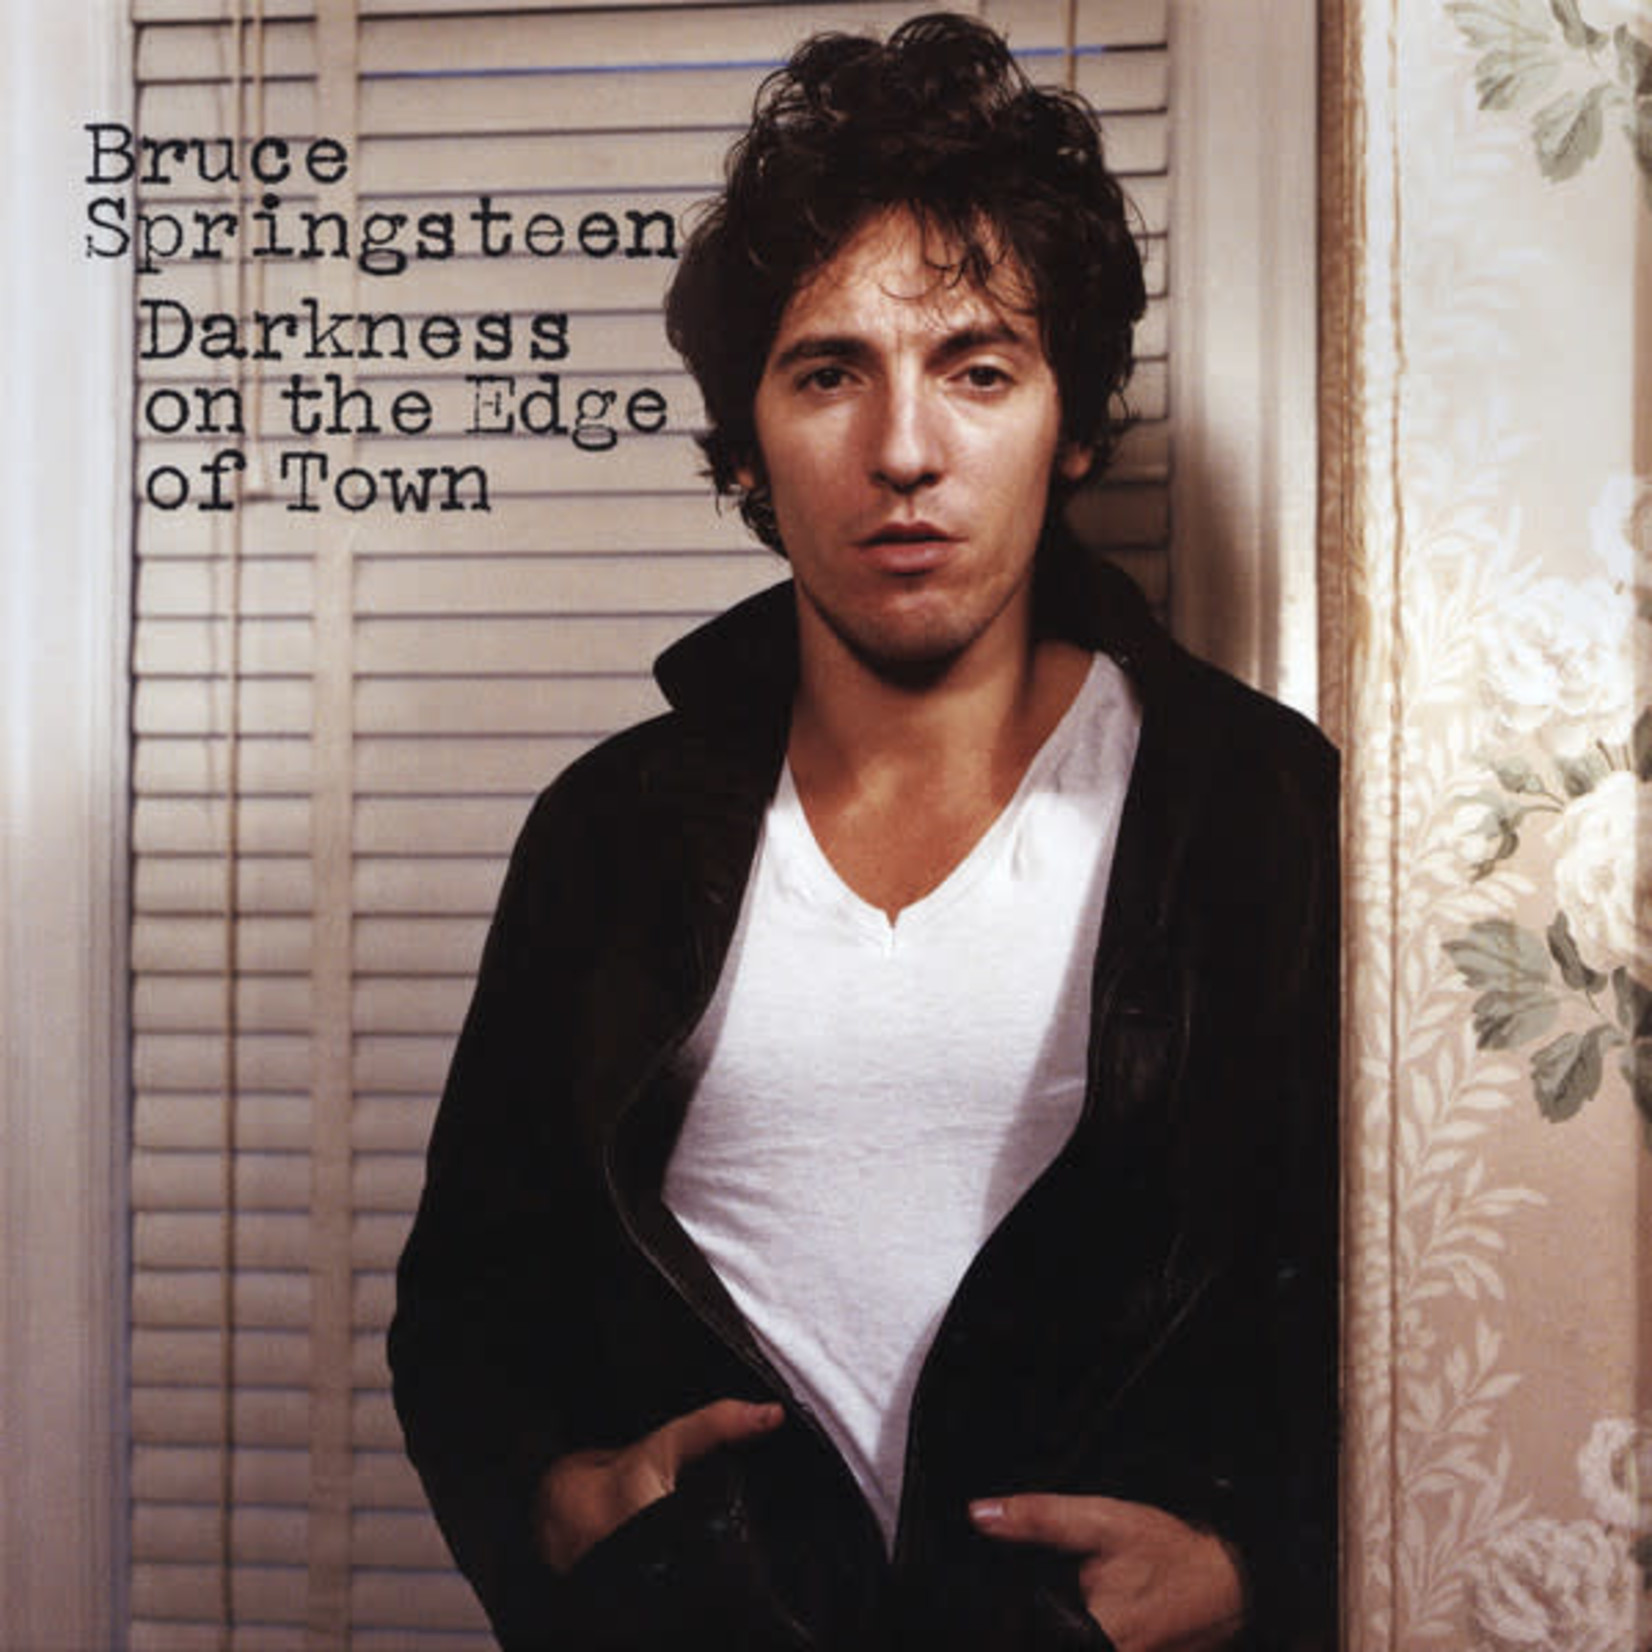 BRUCE SPRINGSTEEN & THE E STREET BAND DARKNESS ON THE EDGE OF TOWN (REMASTERED)